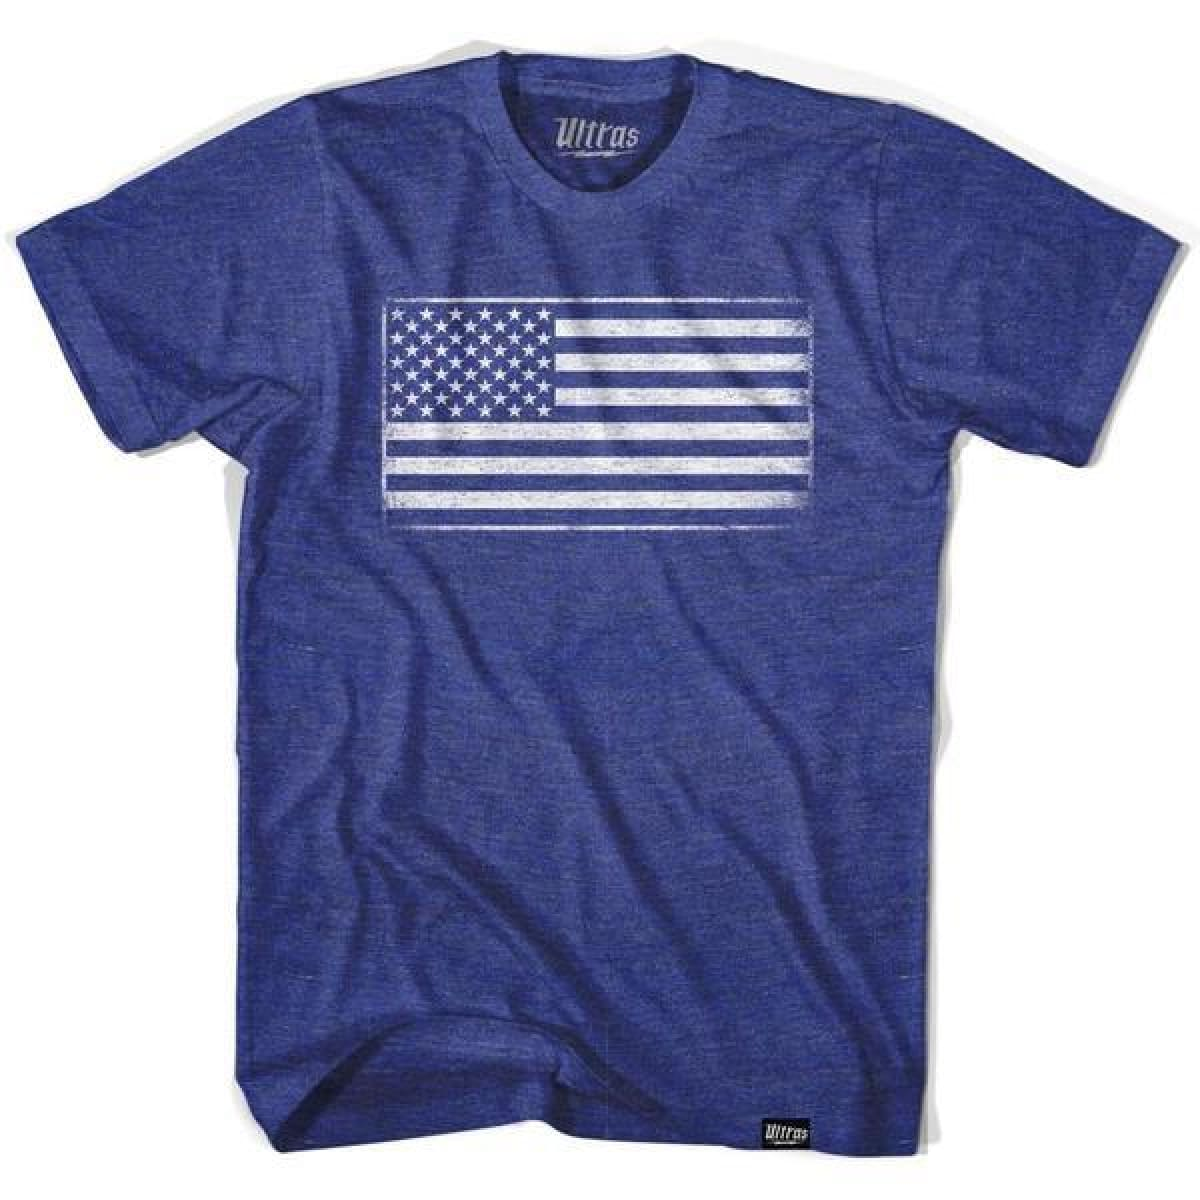 Ultras USA American Flag T-shirt - Ultras USA Soccer T-shirts